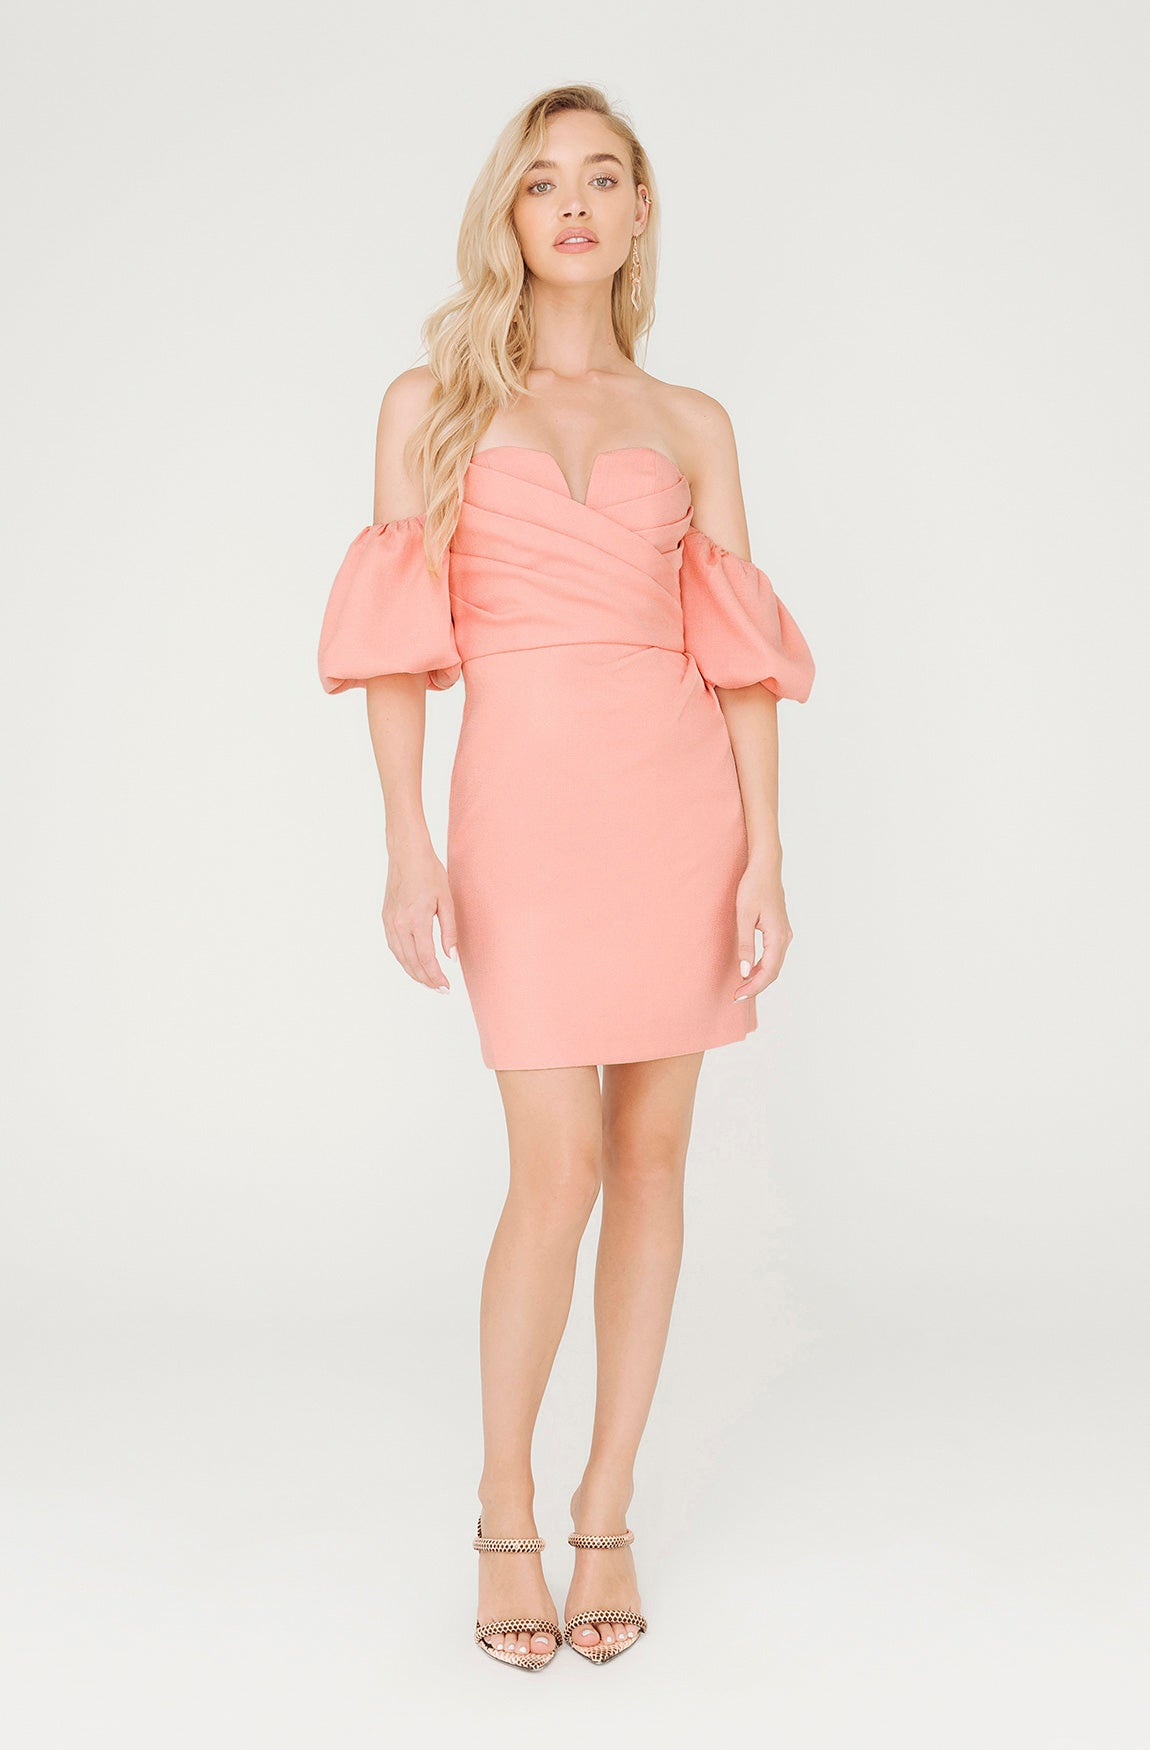 FLORENCE PINK OFF SHOULDER DRESS